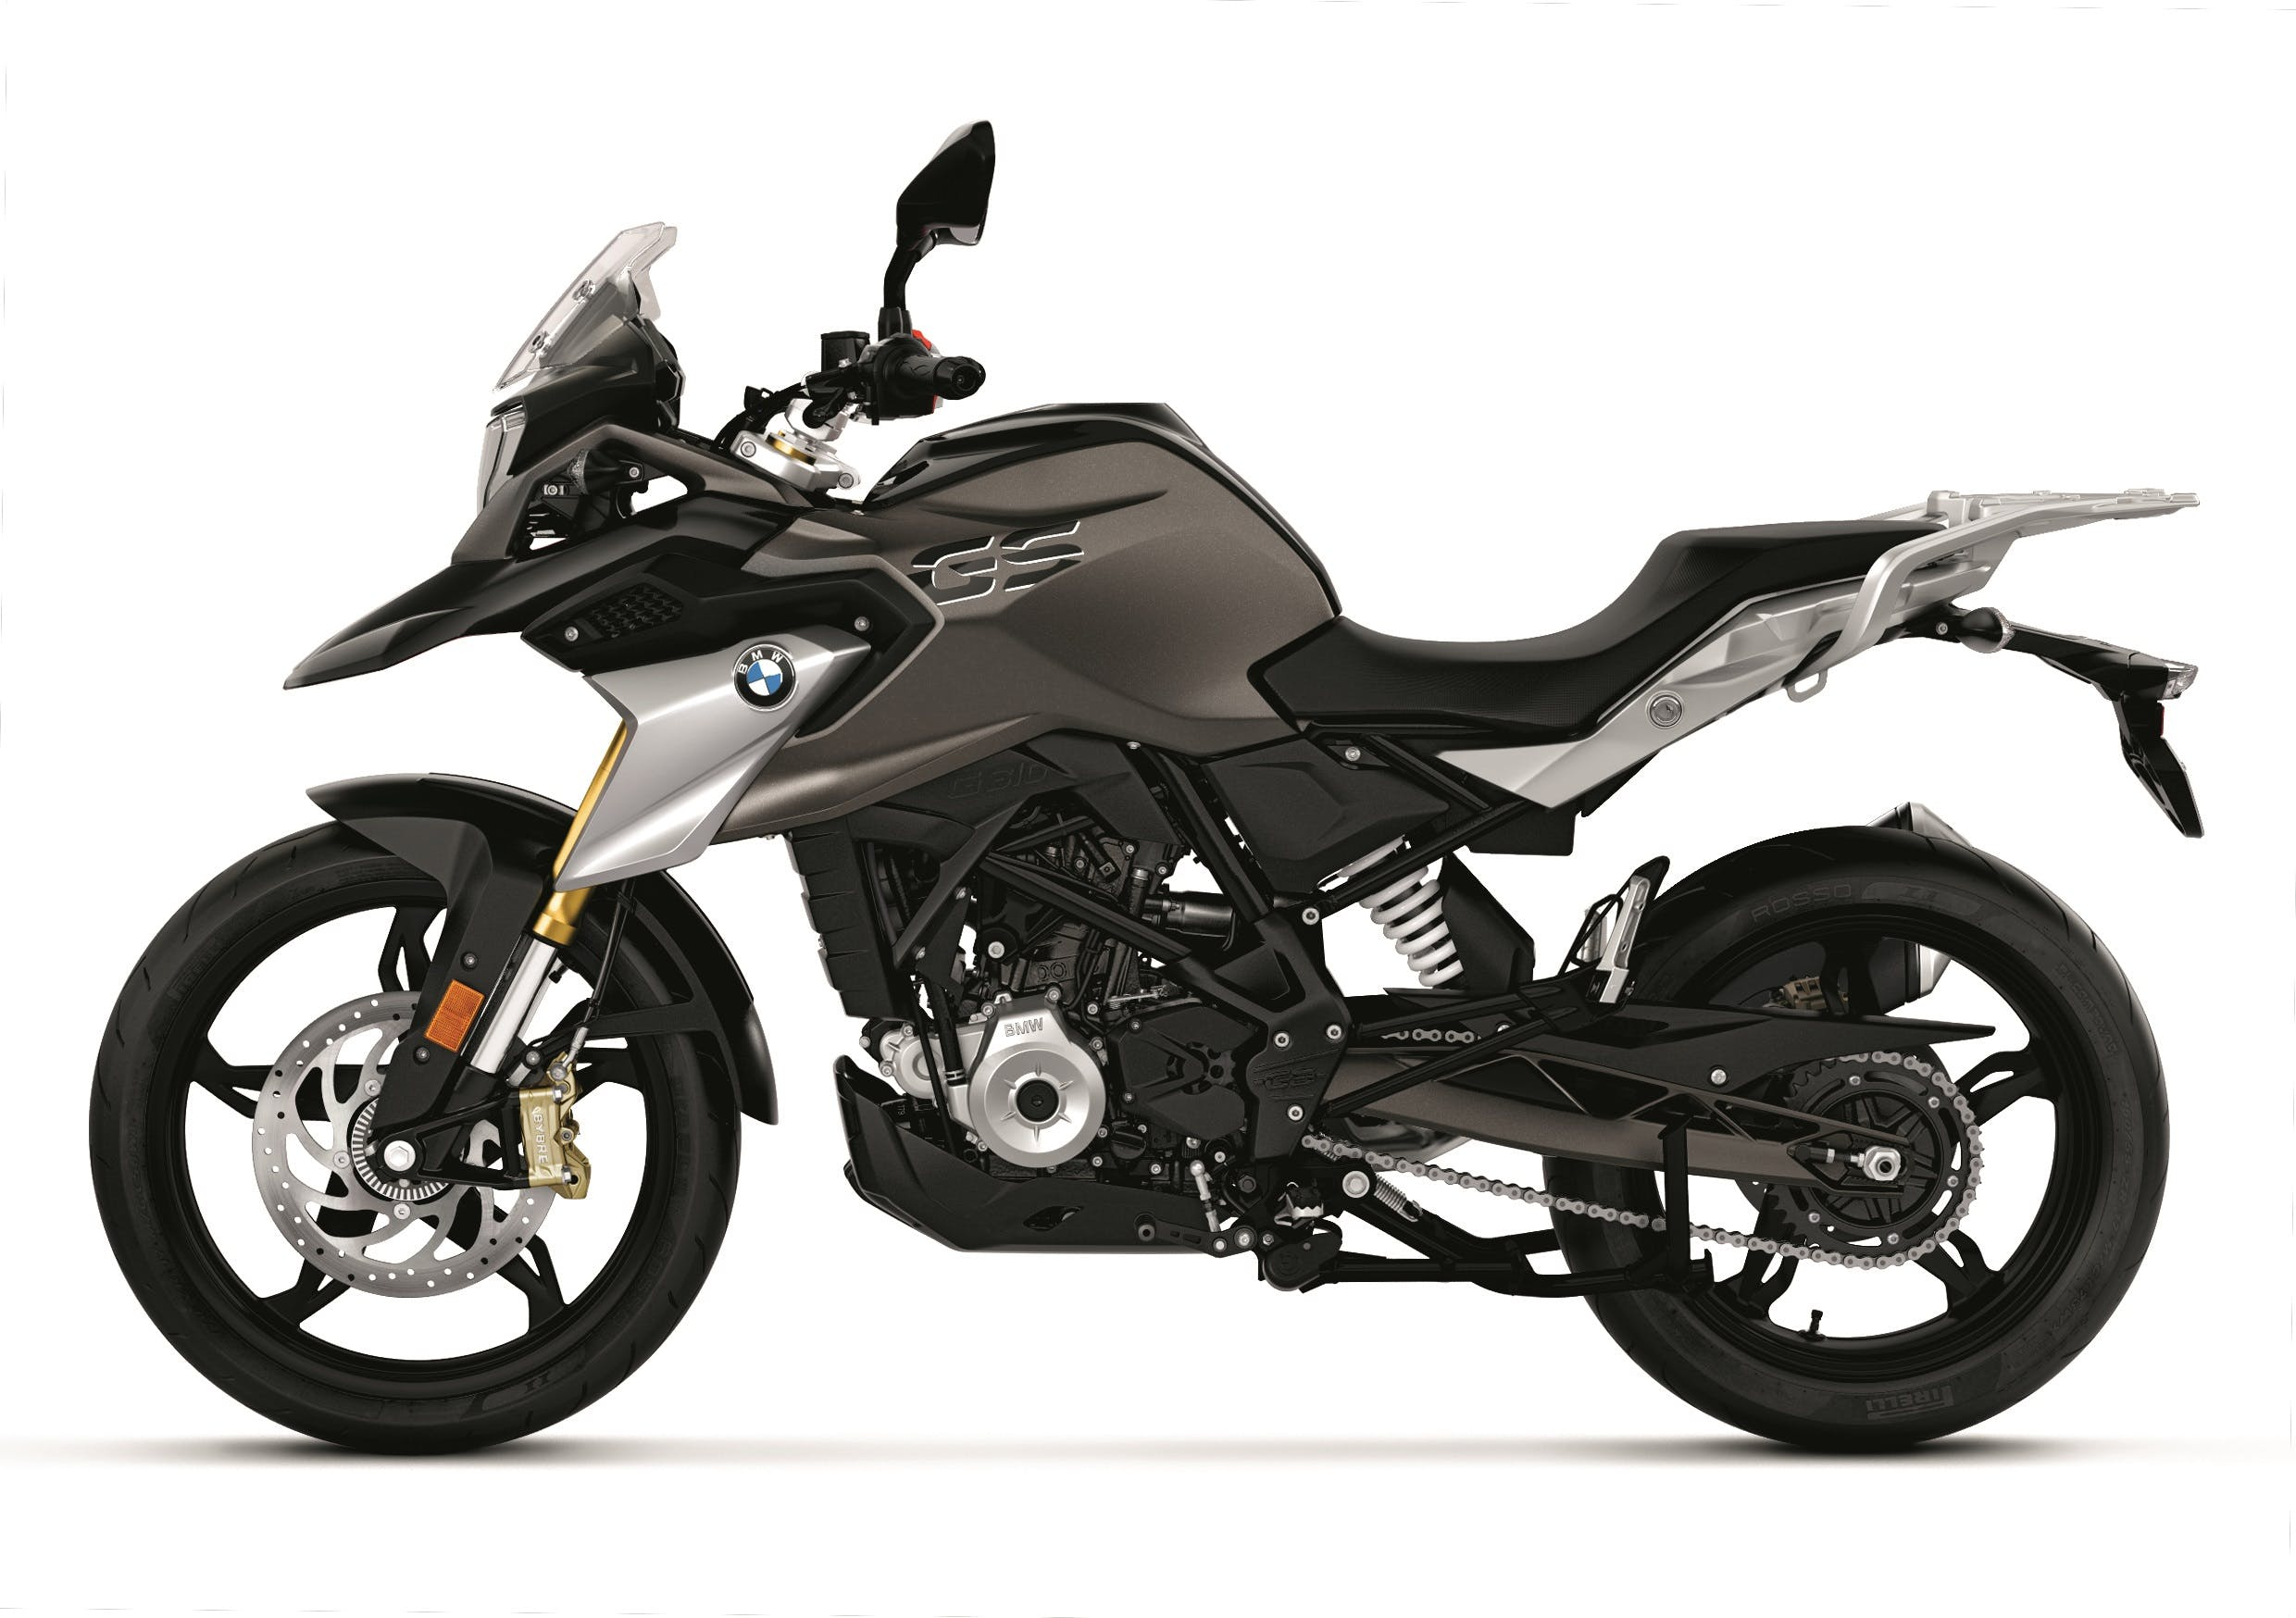 BMW G 310 GS in cosmic black colour